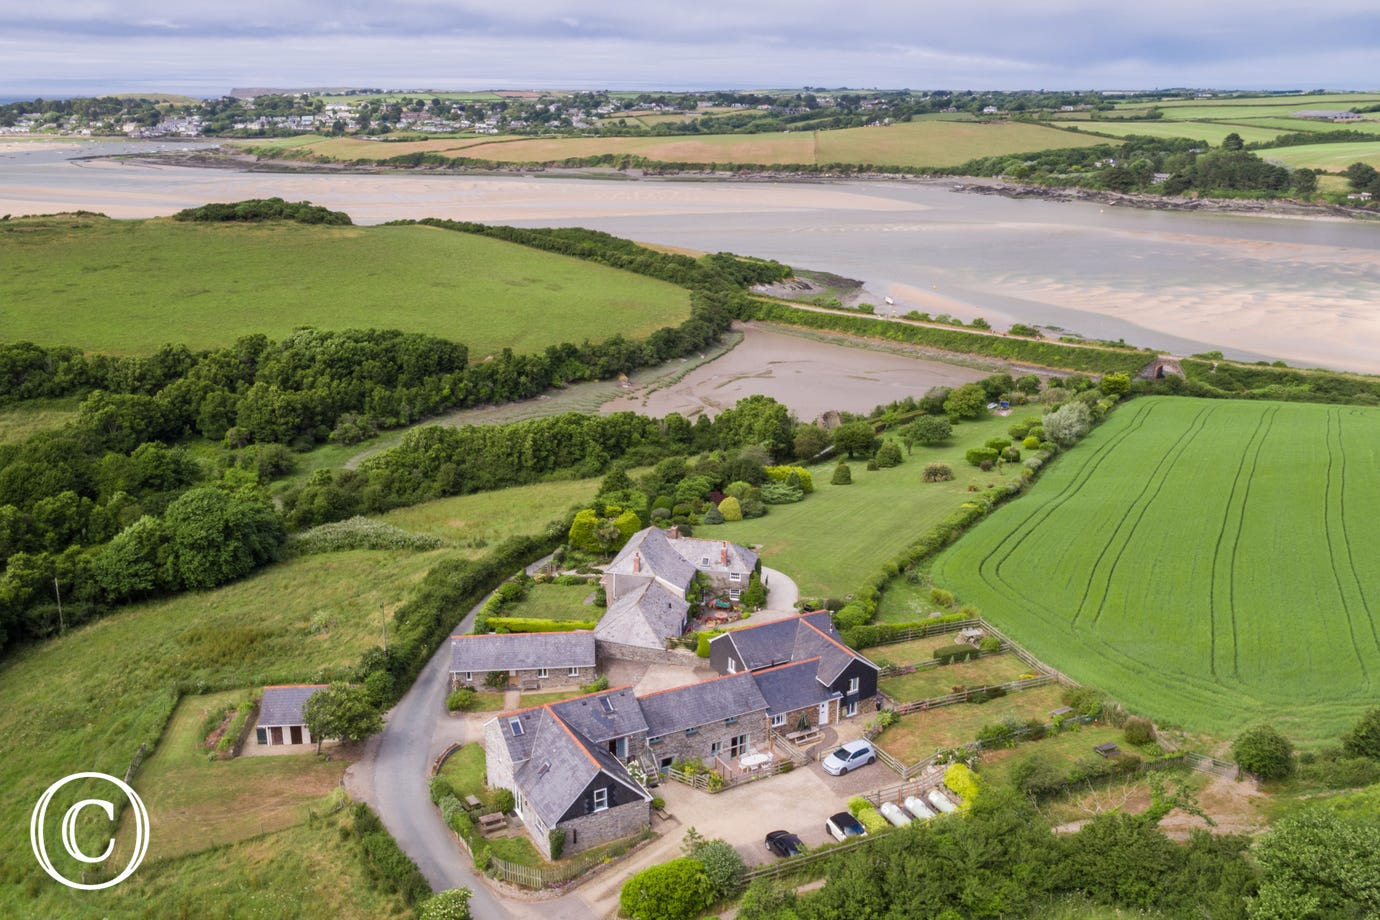 Little House is just a short step from the Camel Trail and Estuary